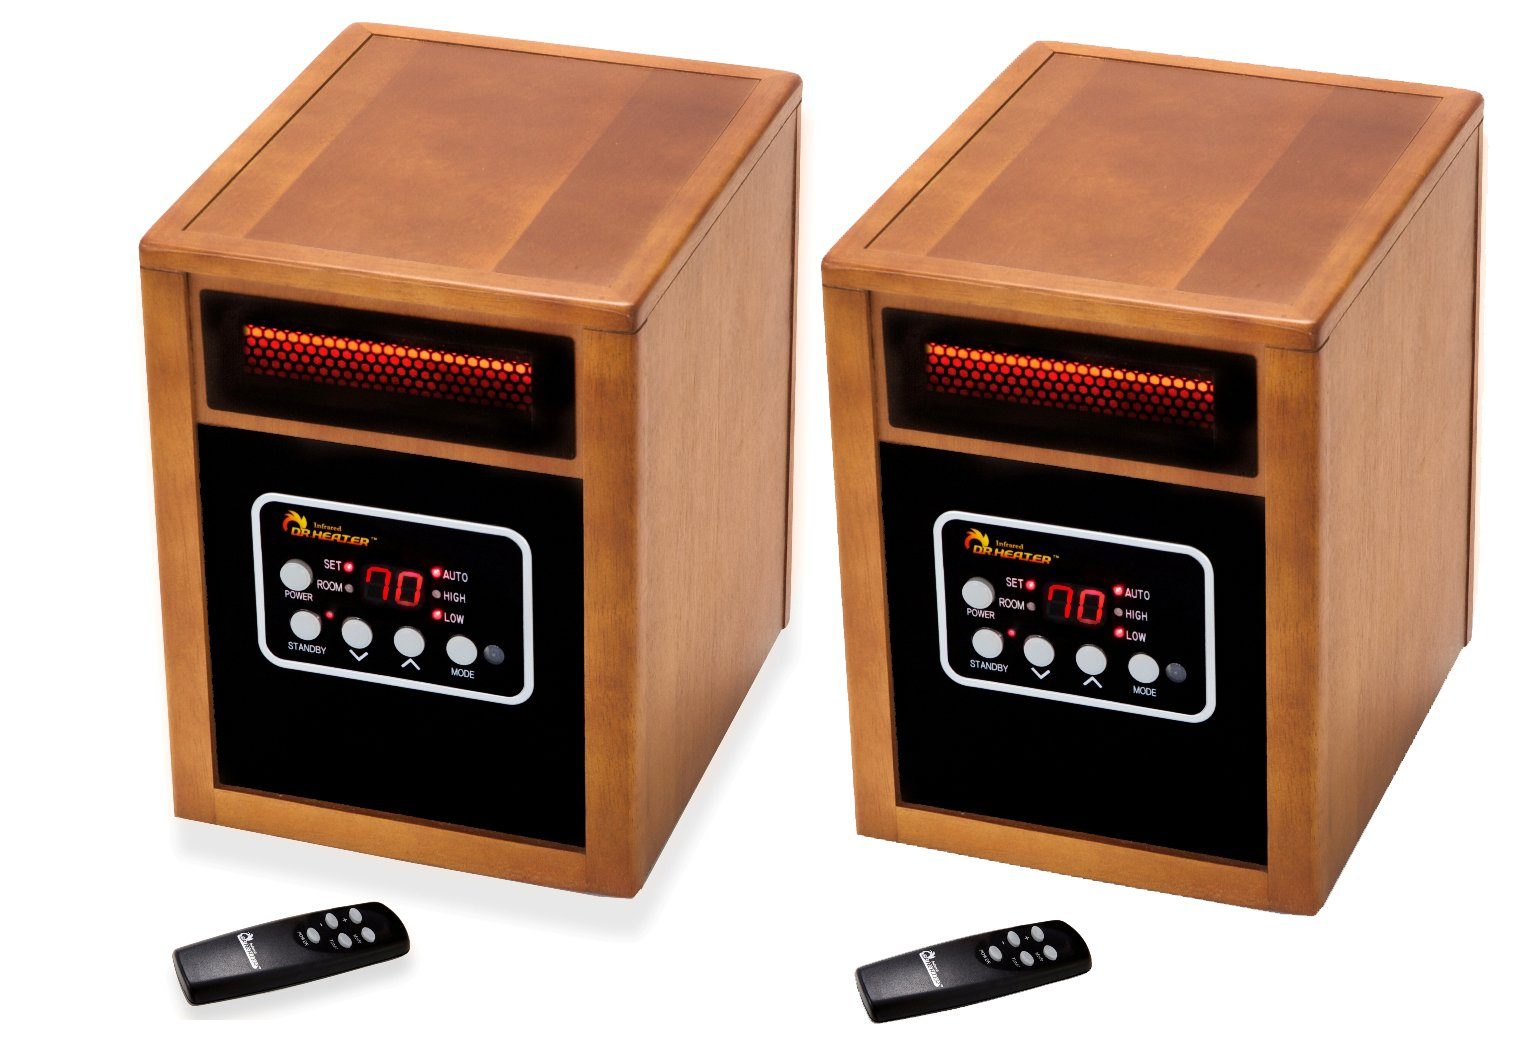 Dr. Infrared Heater Portable Space Heater, 2 Pack, 1500-Watt